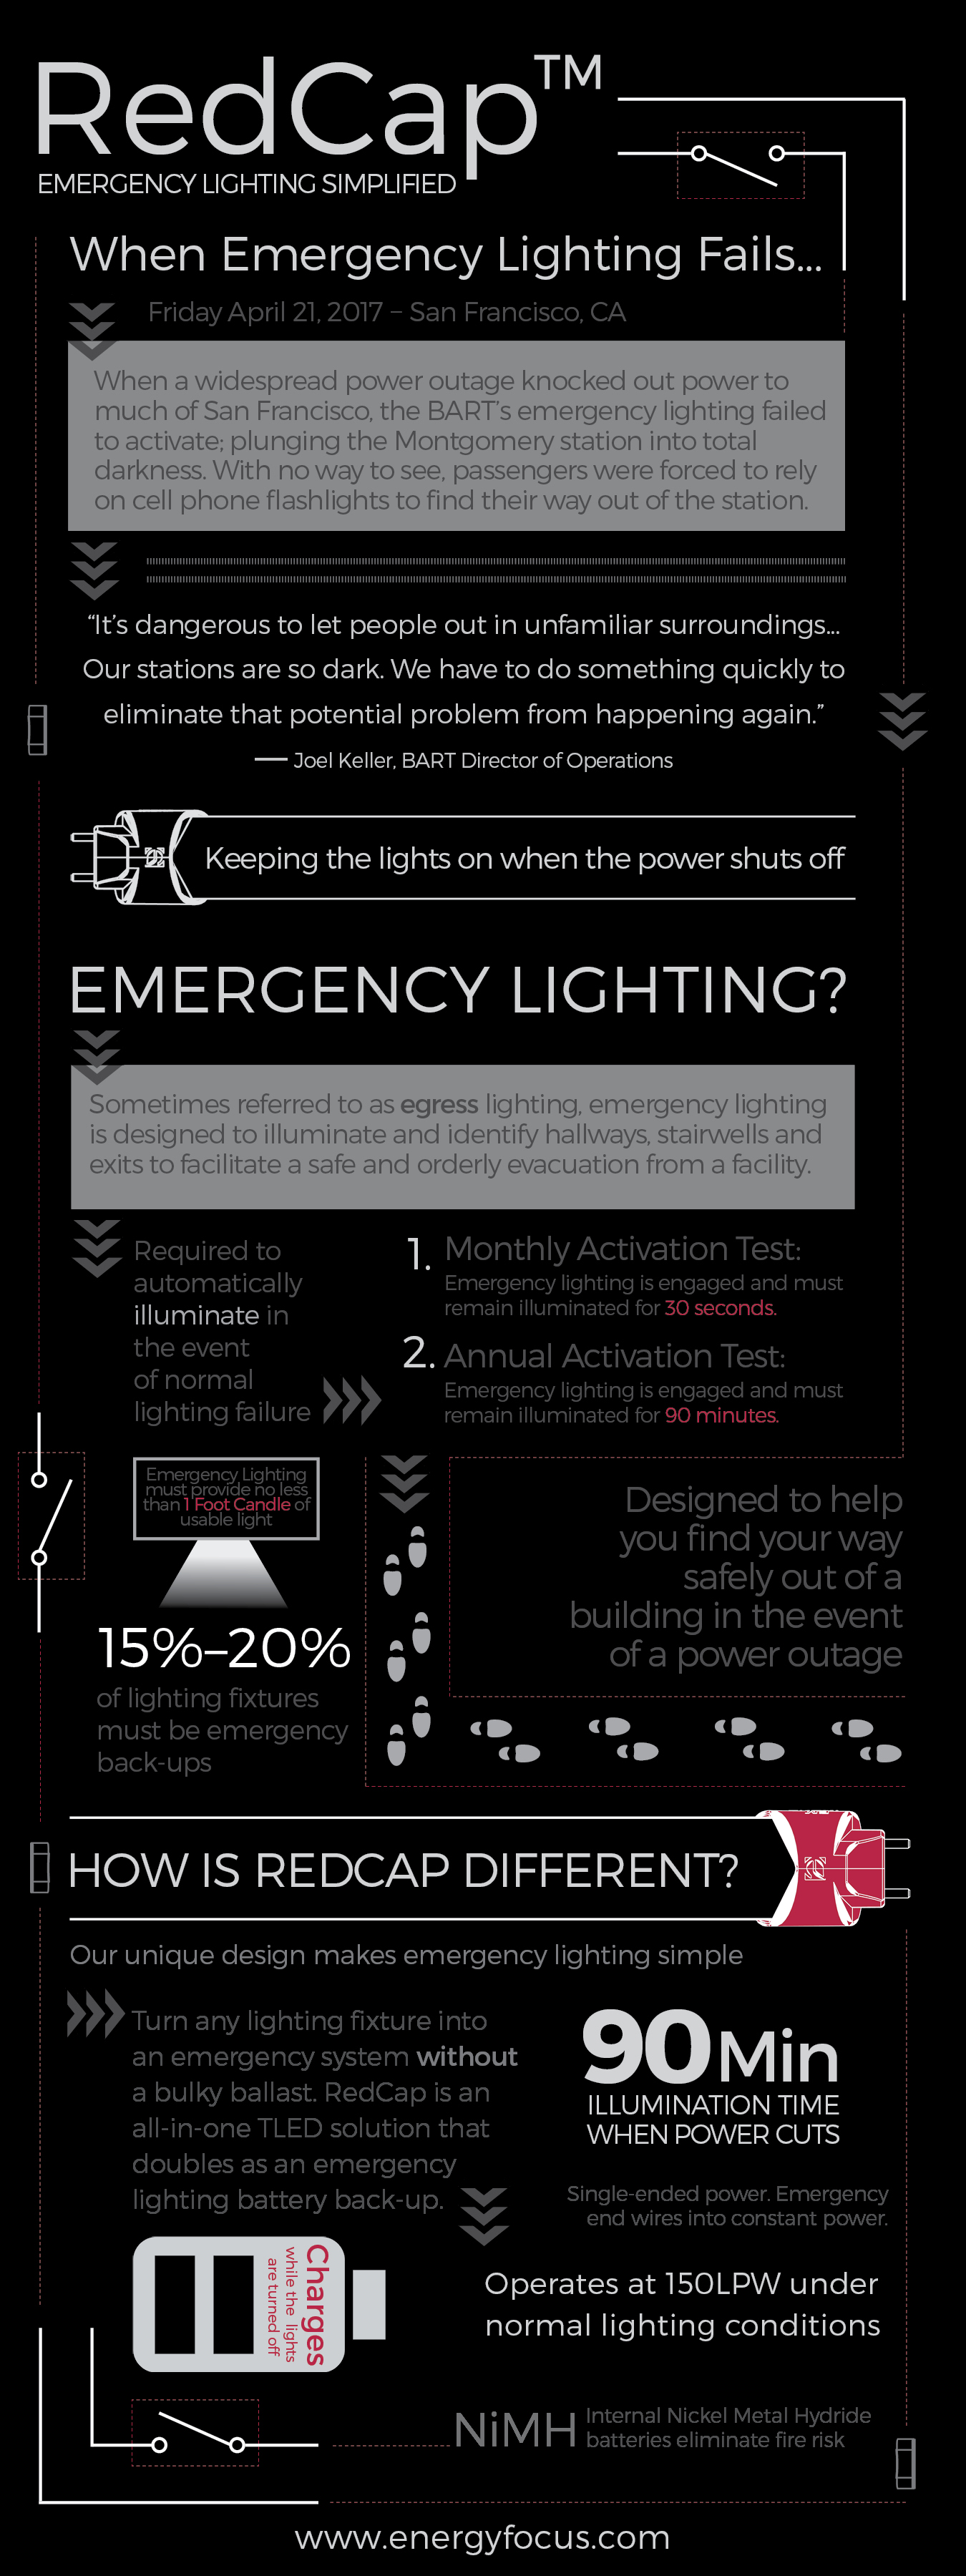 RedCap emergency lighting Infographic